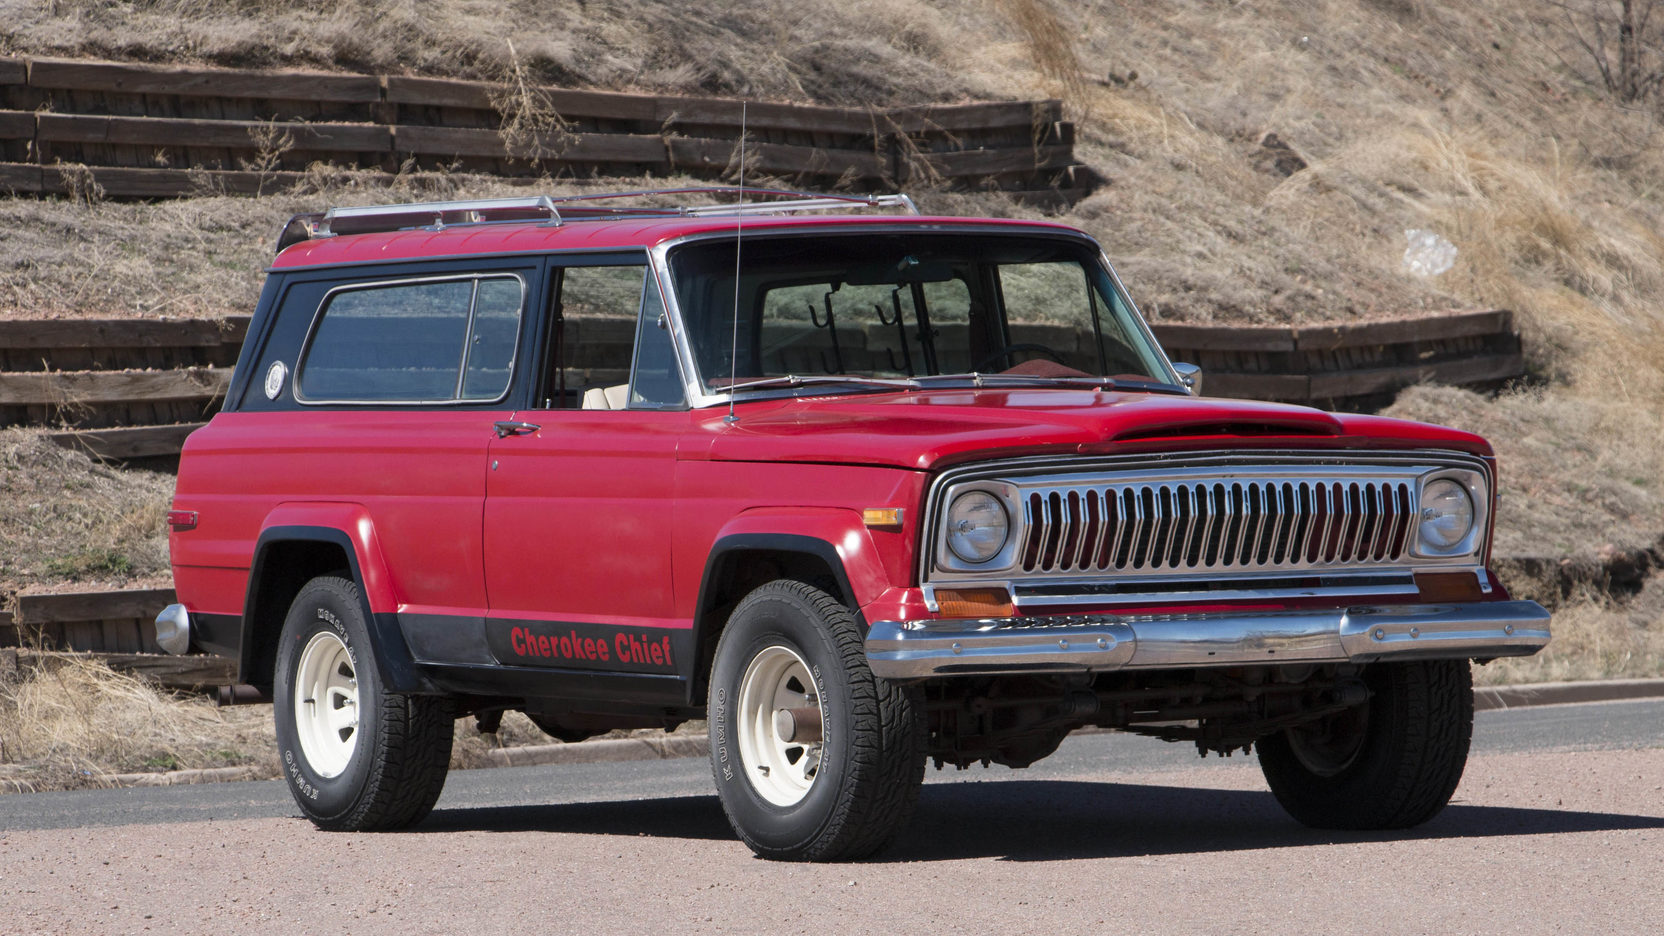 1978 Jeep Cherokee Chief